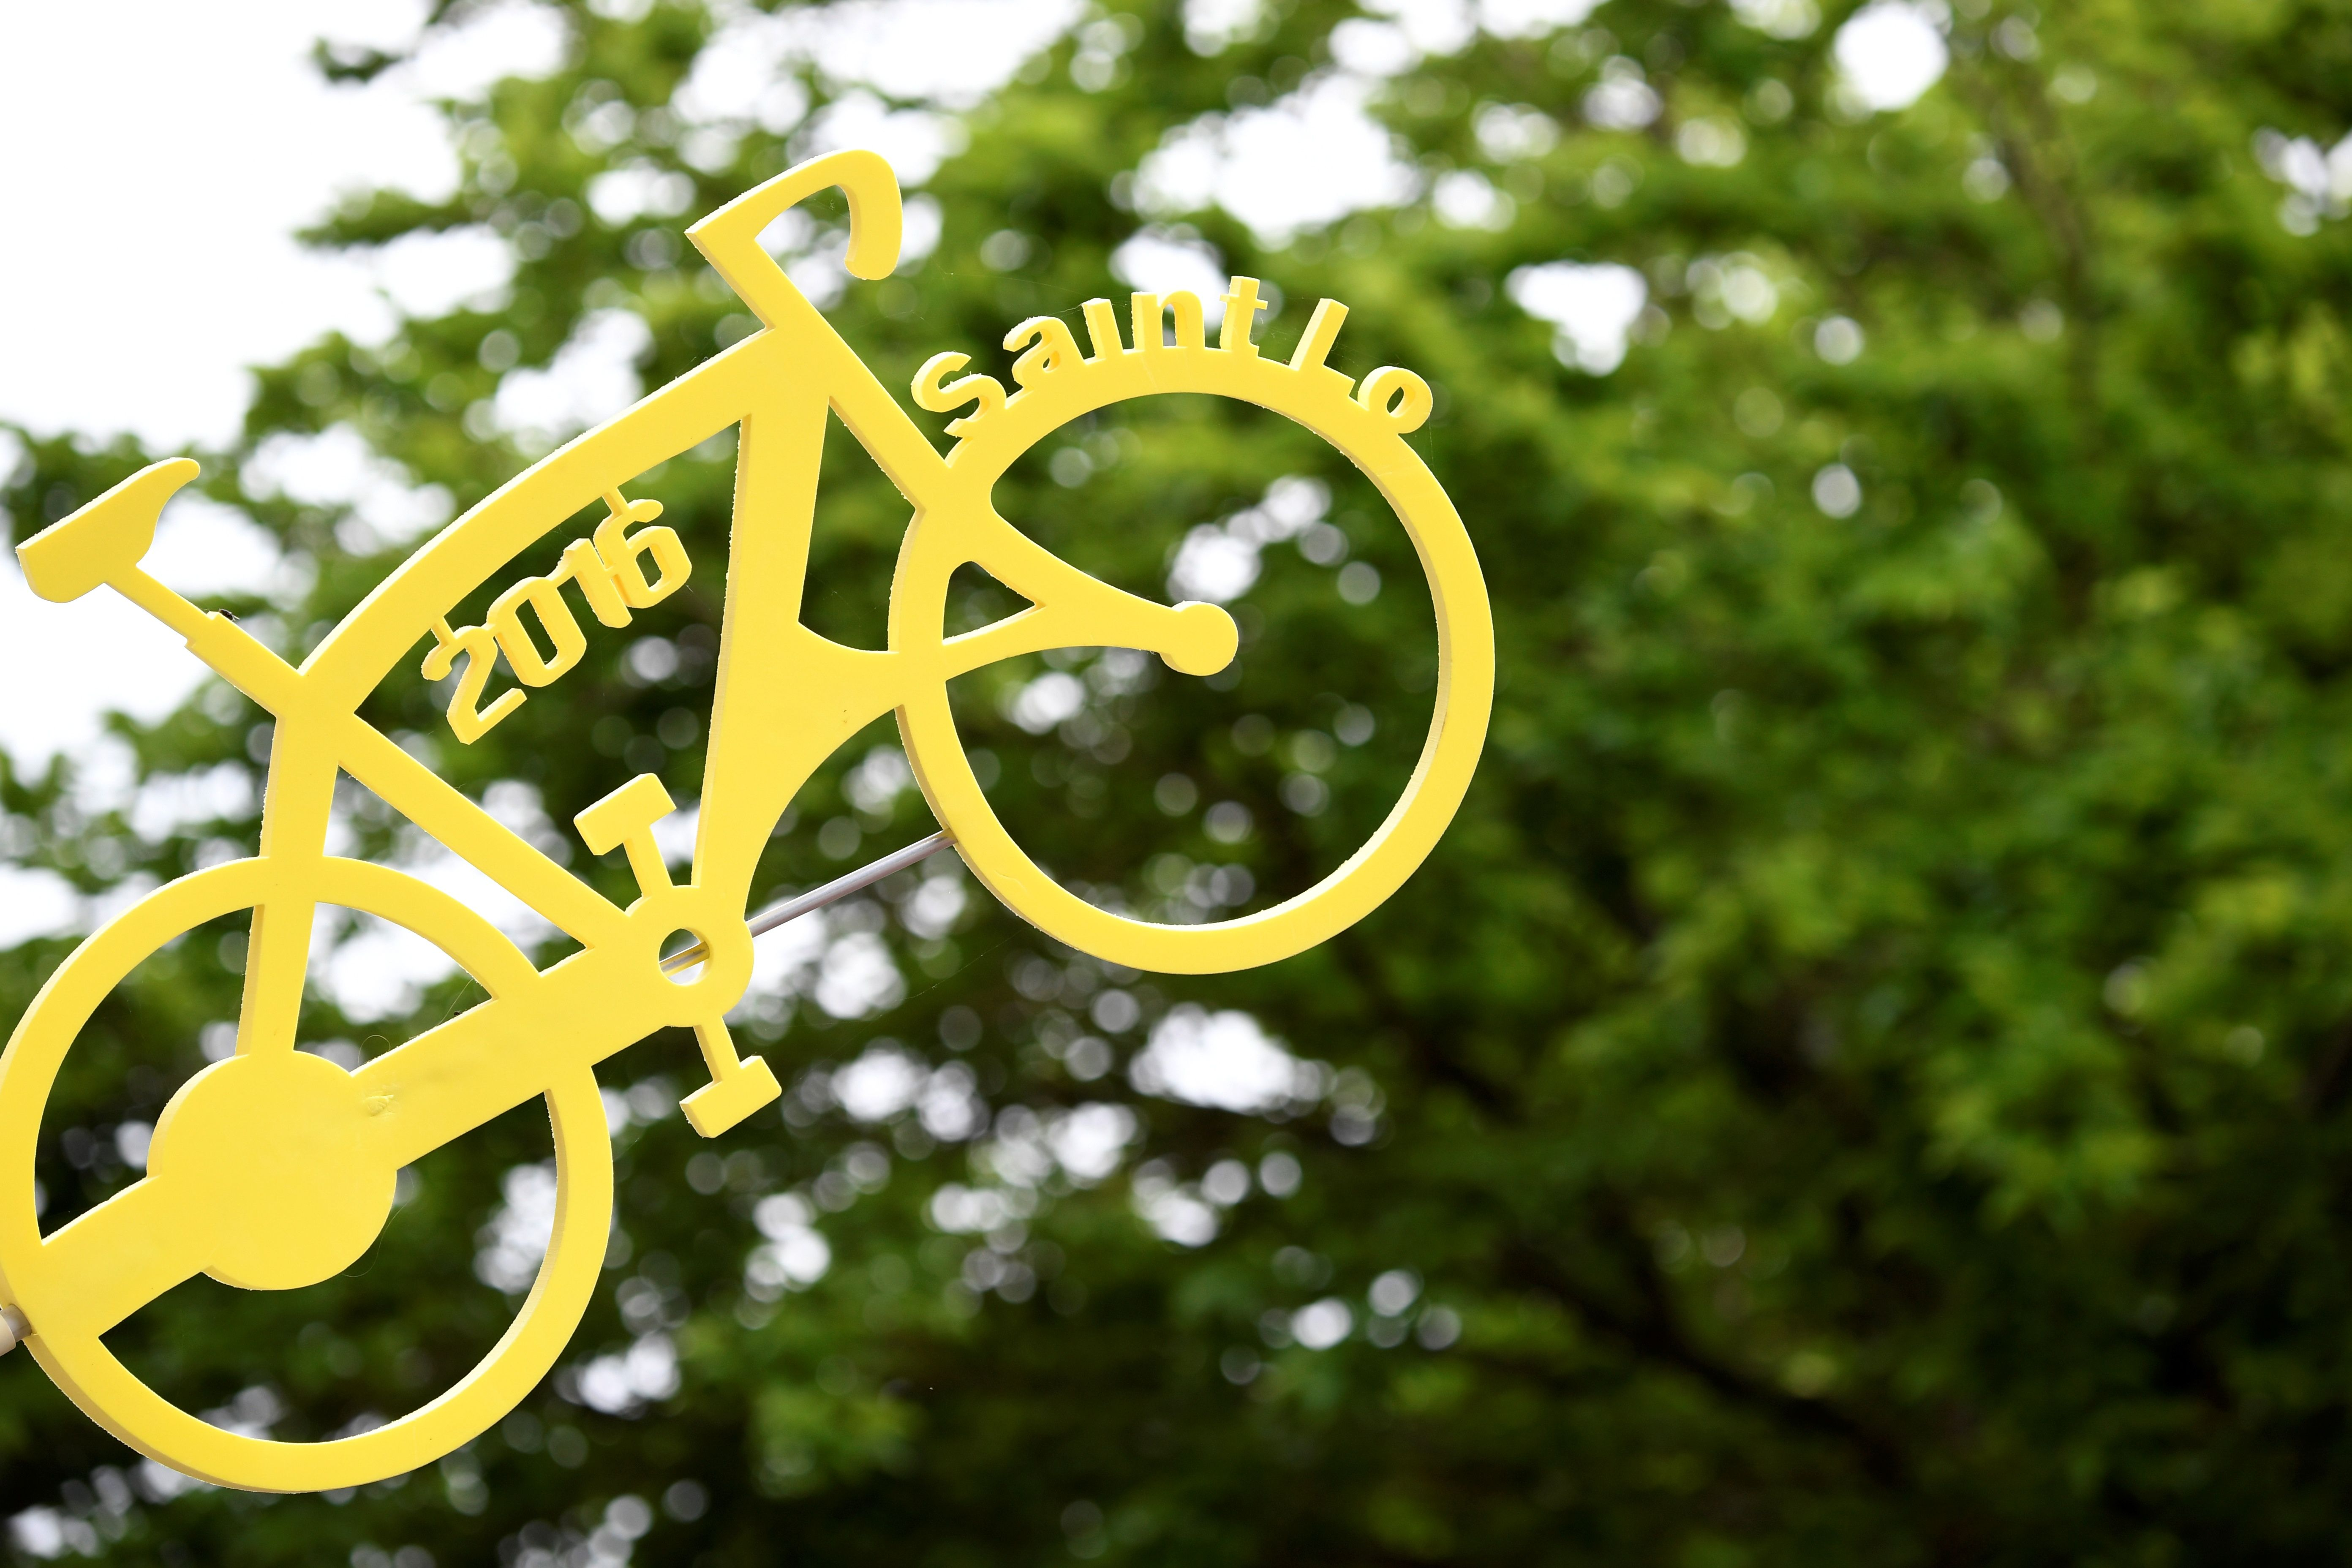 All you need to know about Tour de France 2016, with teams, routes and schedule